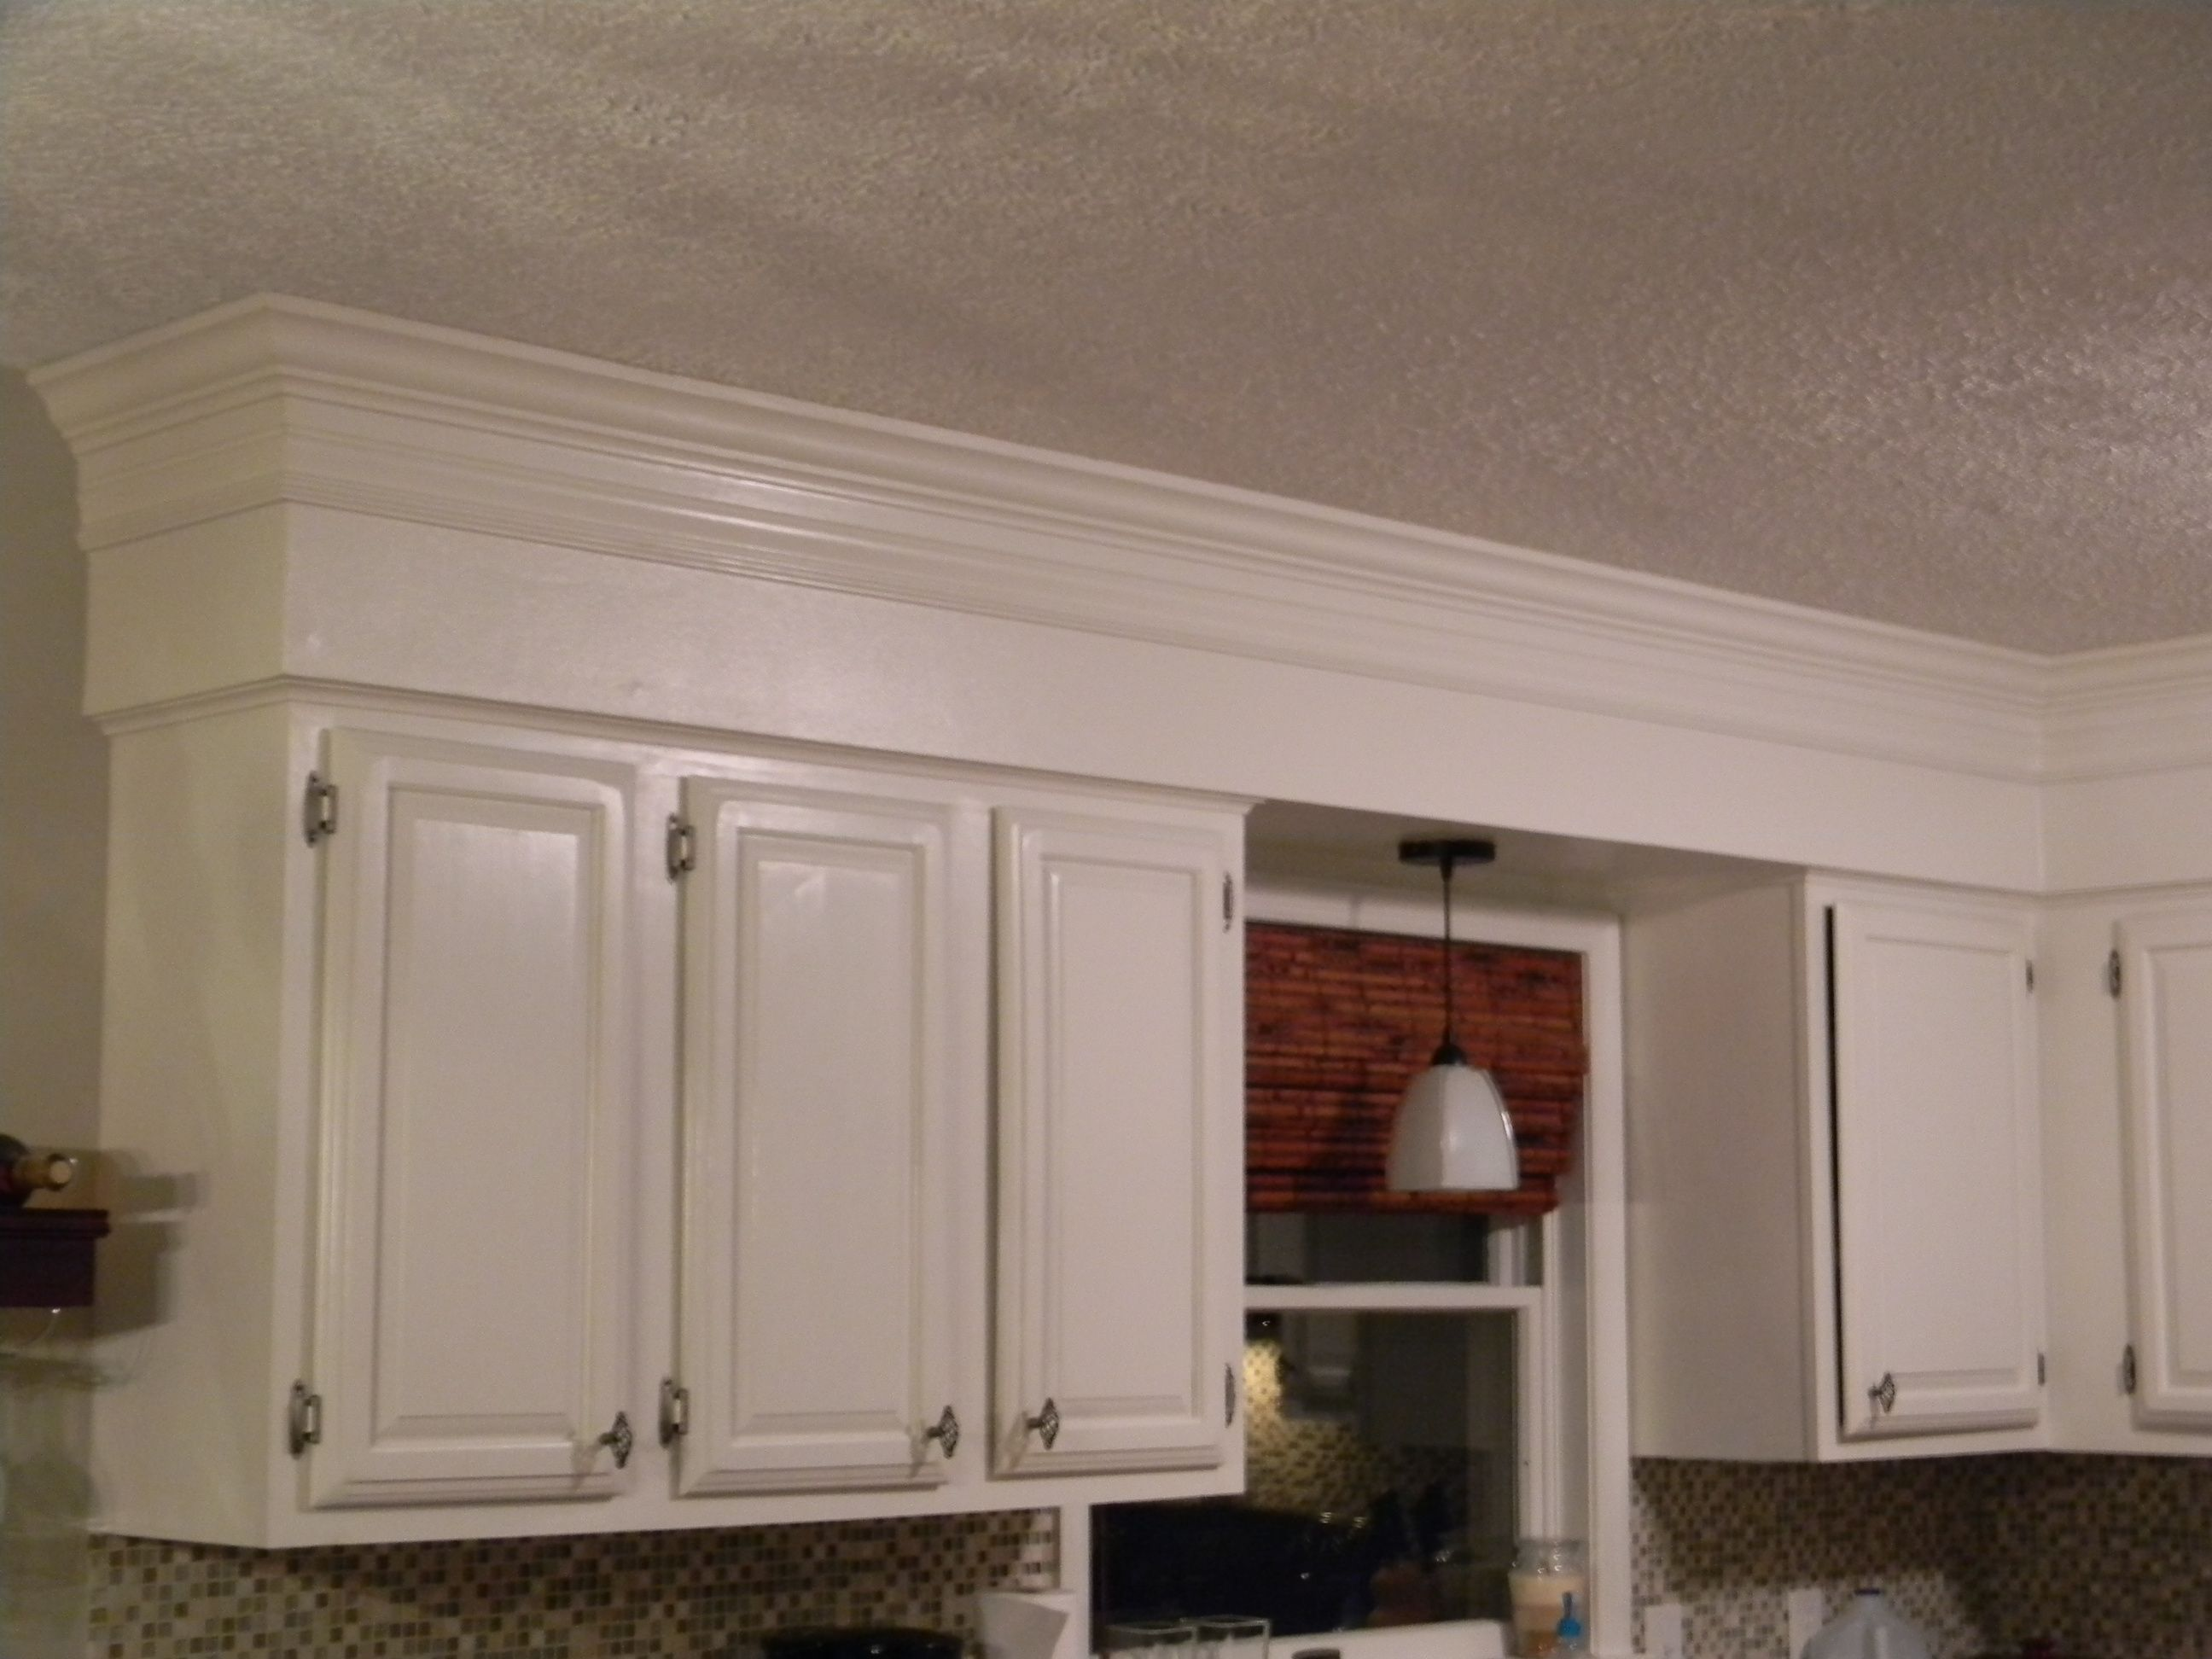 Pin By Naomi Duggins On Home Decor Kitchen Soffit Kitchen Cabinet Crown Molding Above Kitchen Cabinets